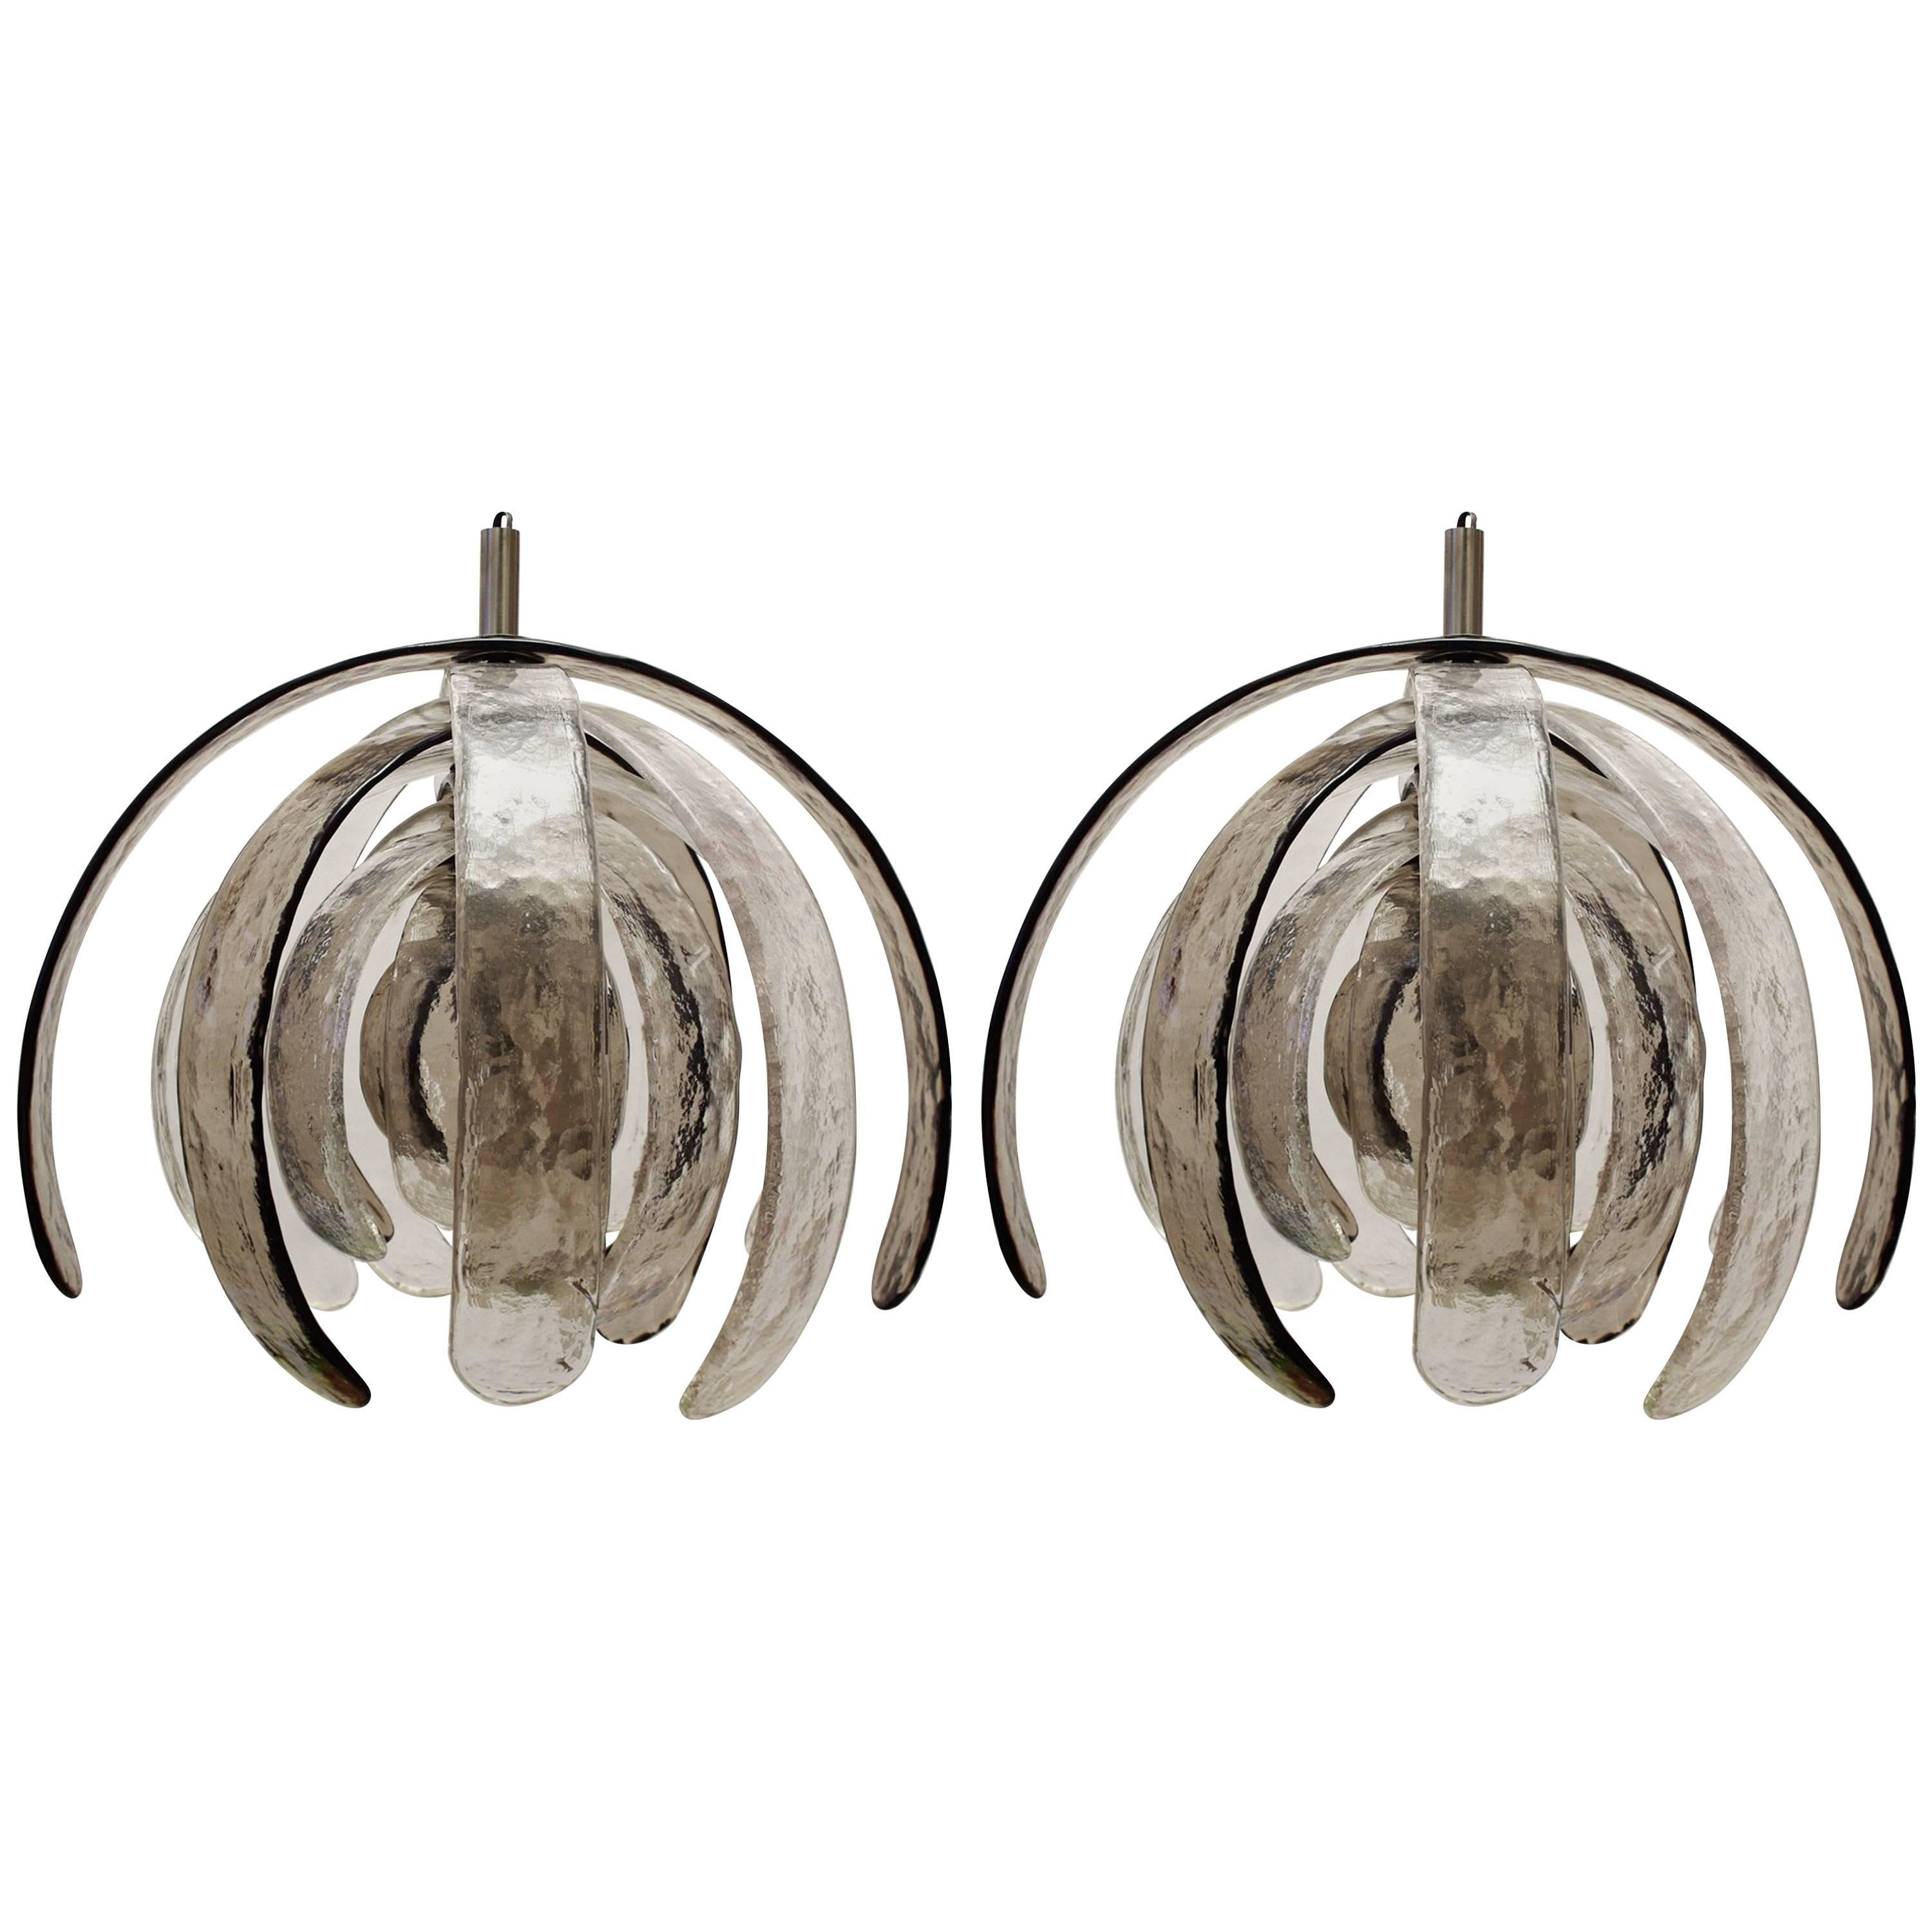 Three Rare Huge Carlo Nason Blown Glass Ceiling Lights Chandeliers, Italy, 1960s